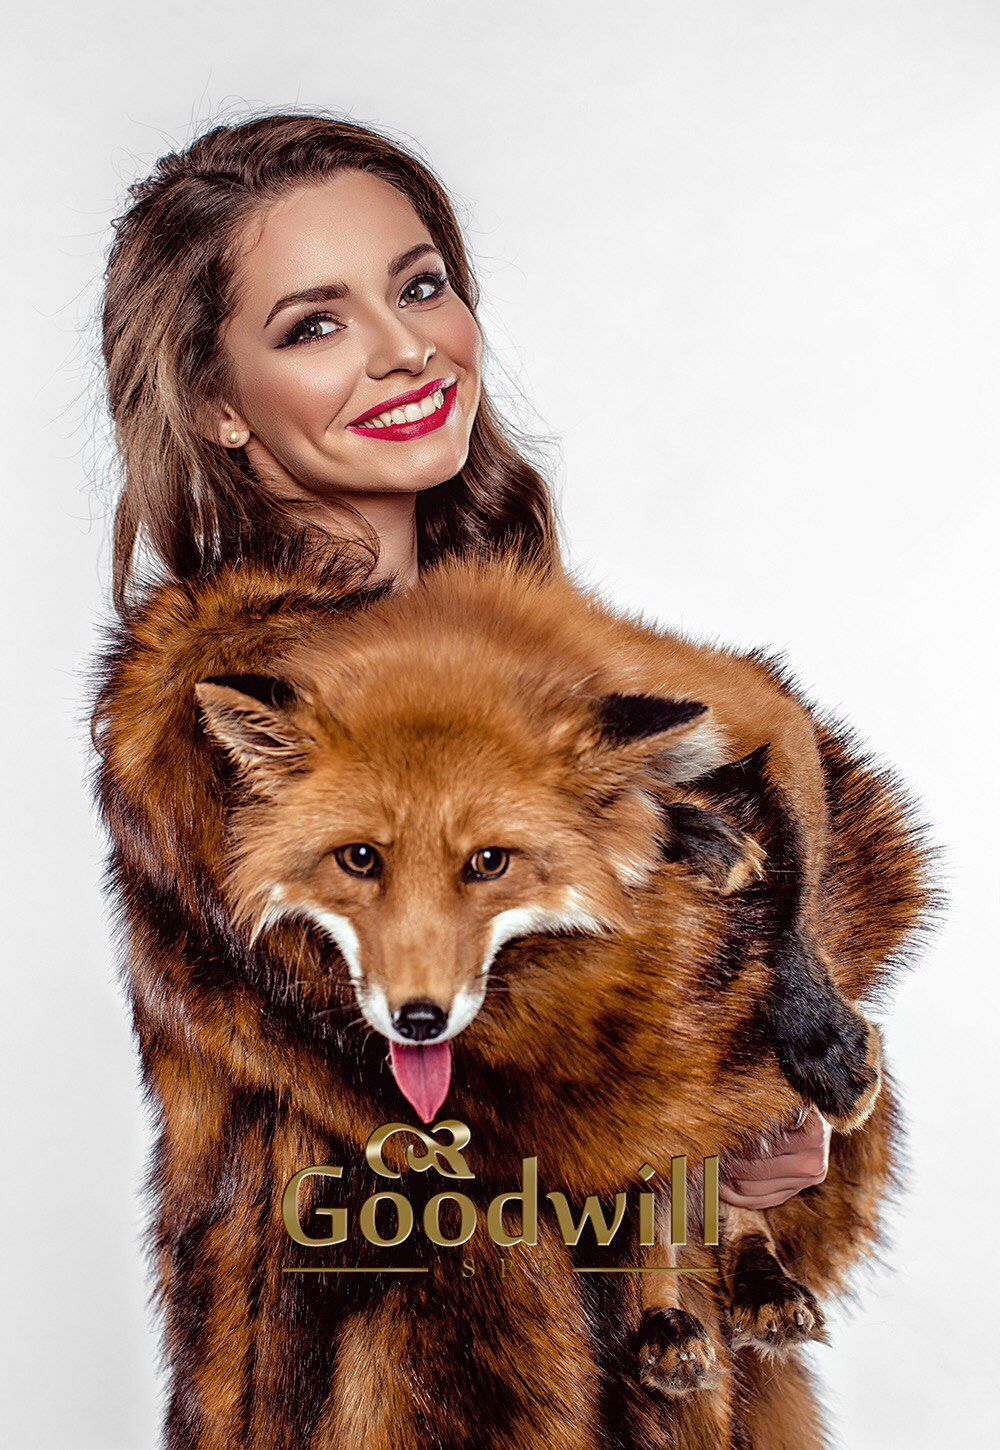 Goodwill-shop.ru